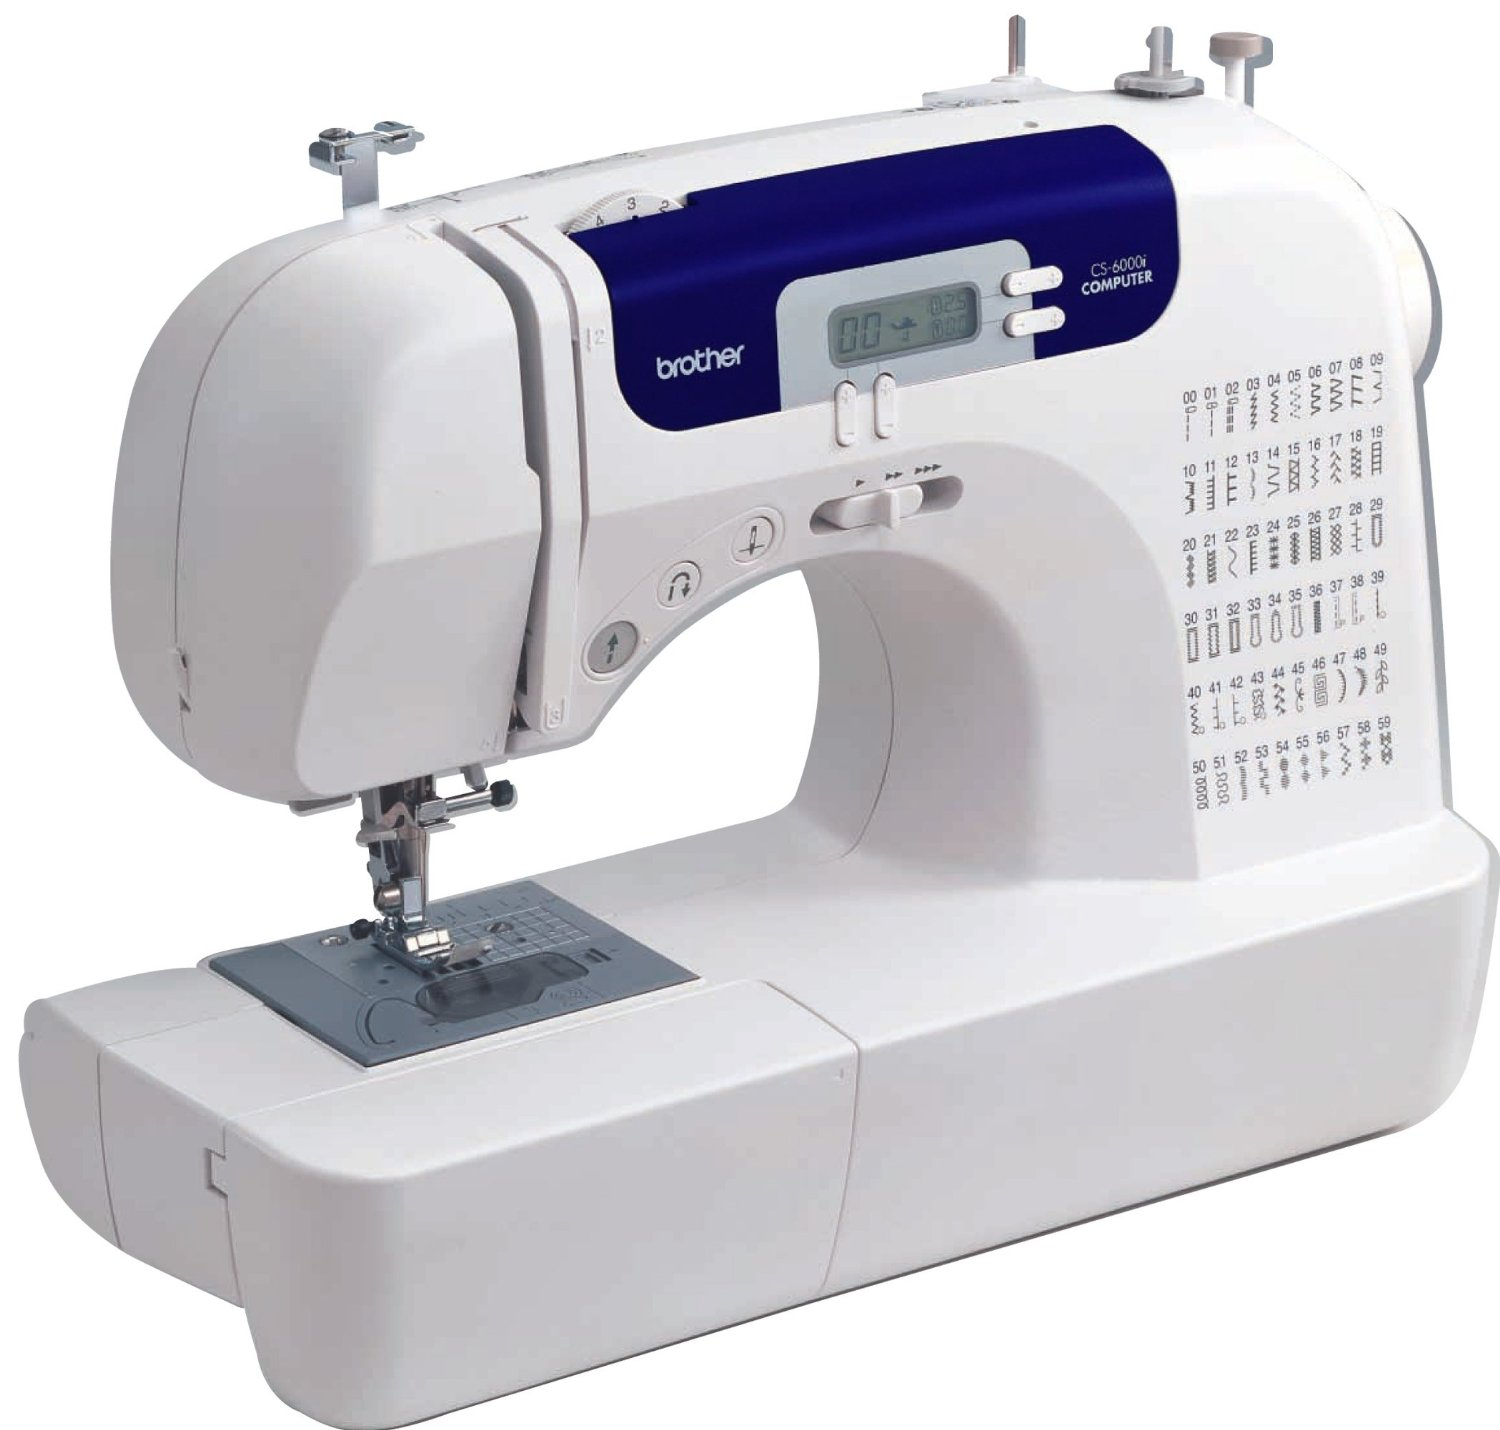 The best beginner sewing machine